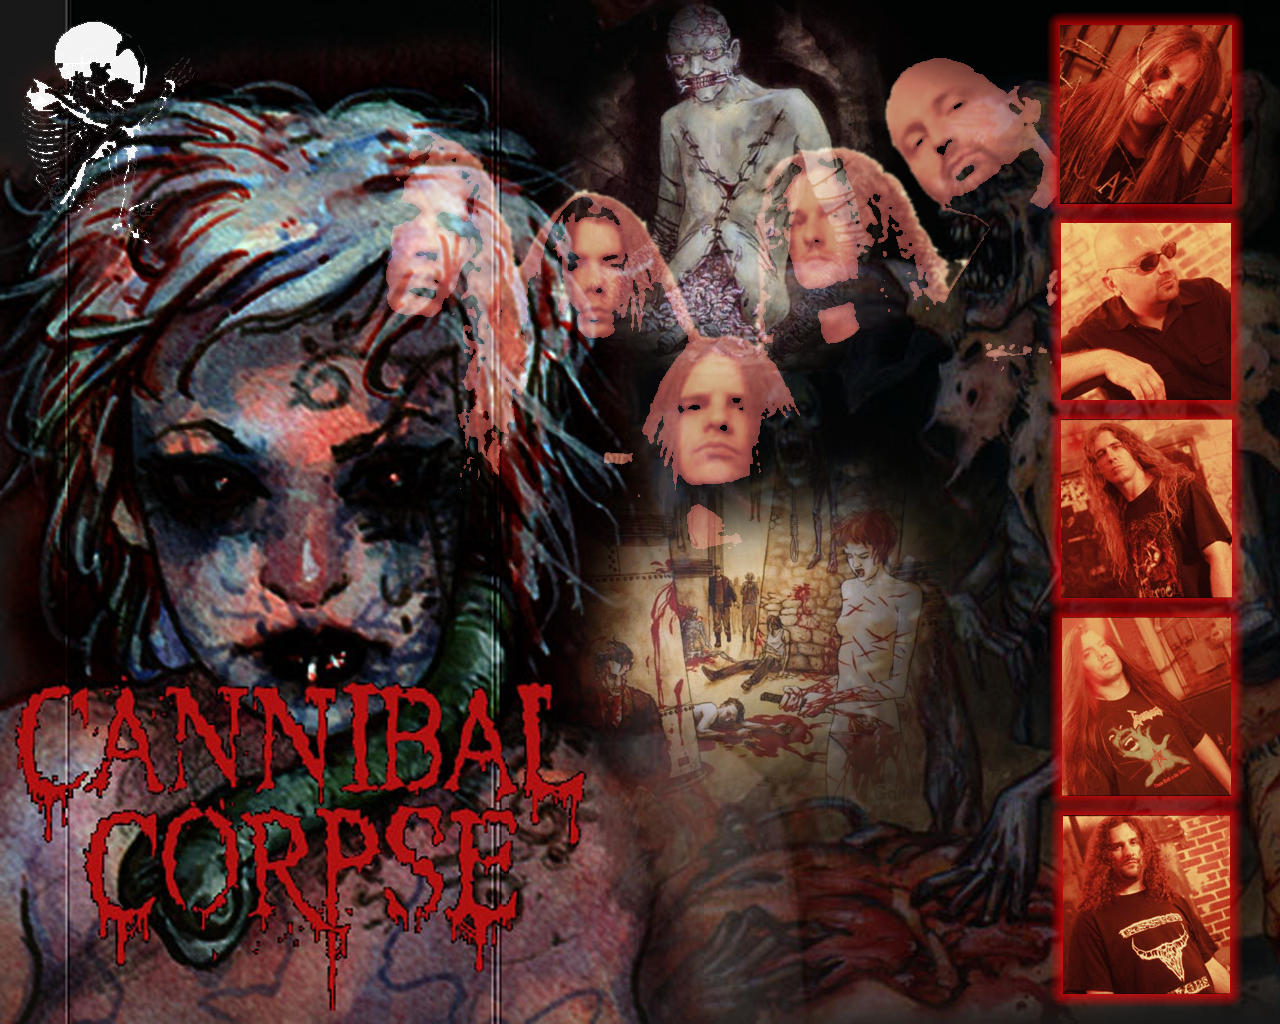 cannibal corpse 2 by replicated on deviantart